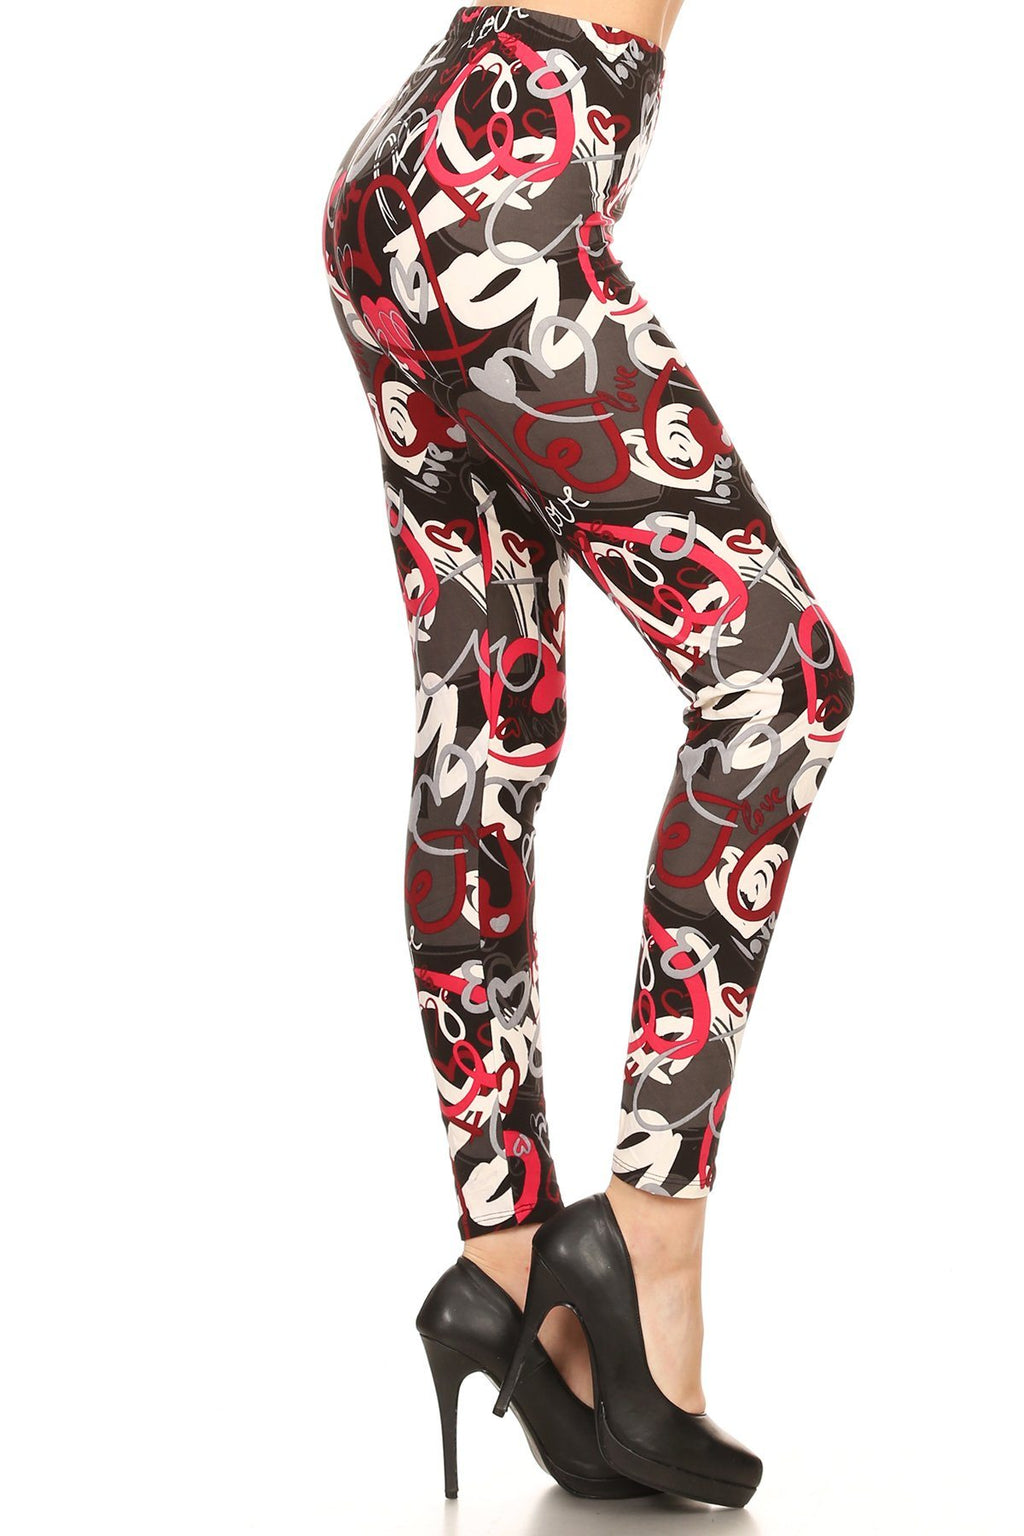 Women's Hearts Printed Leggings Red Black: OS and Plus Leggings MomMe and More